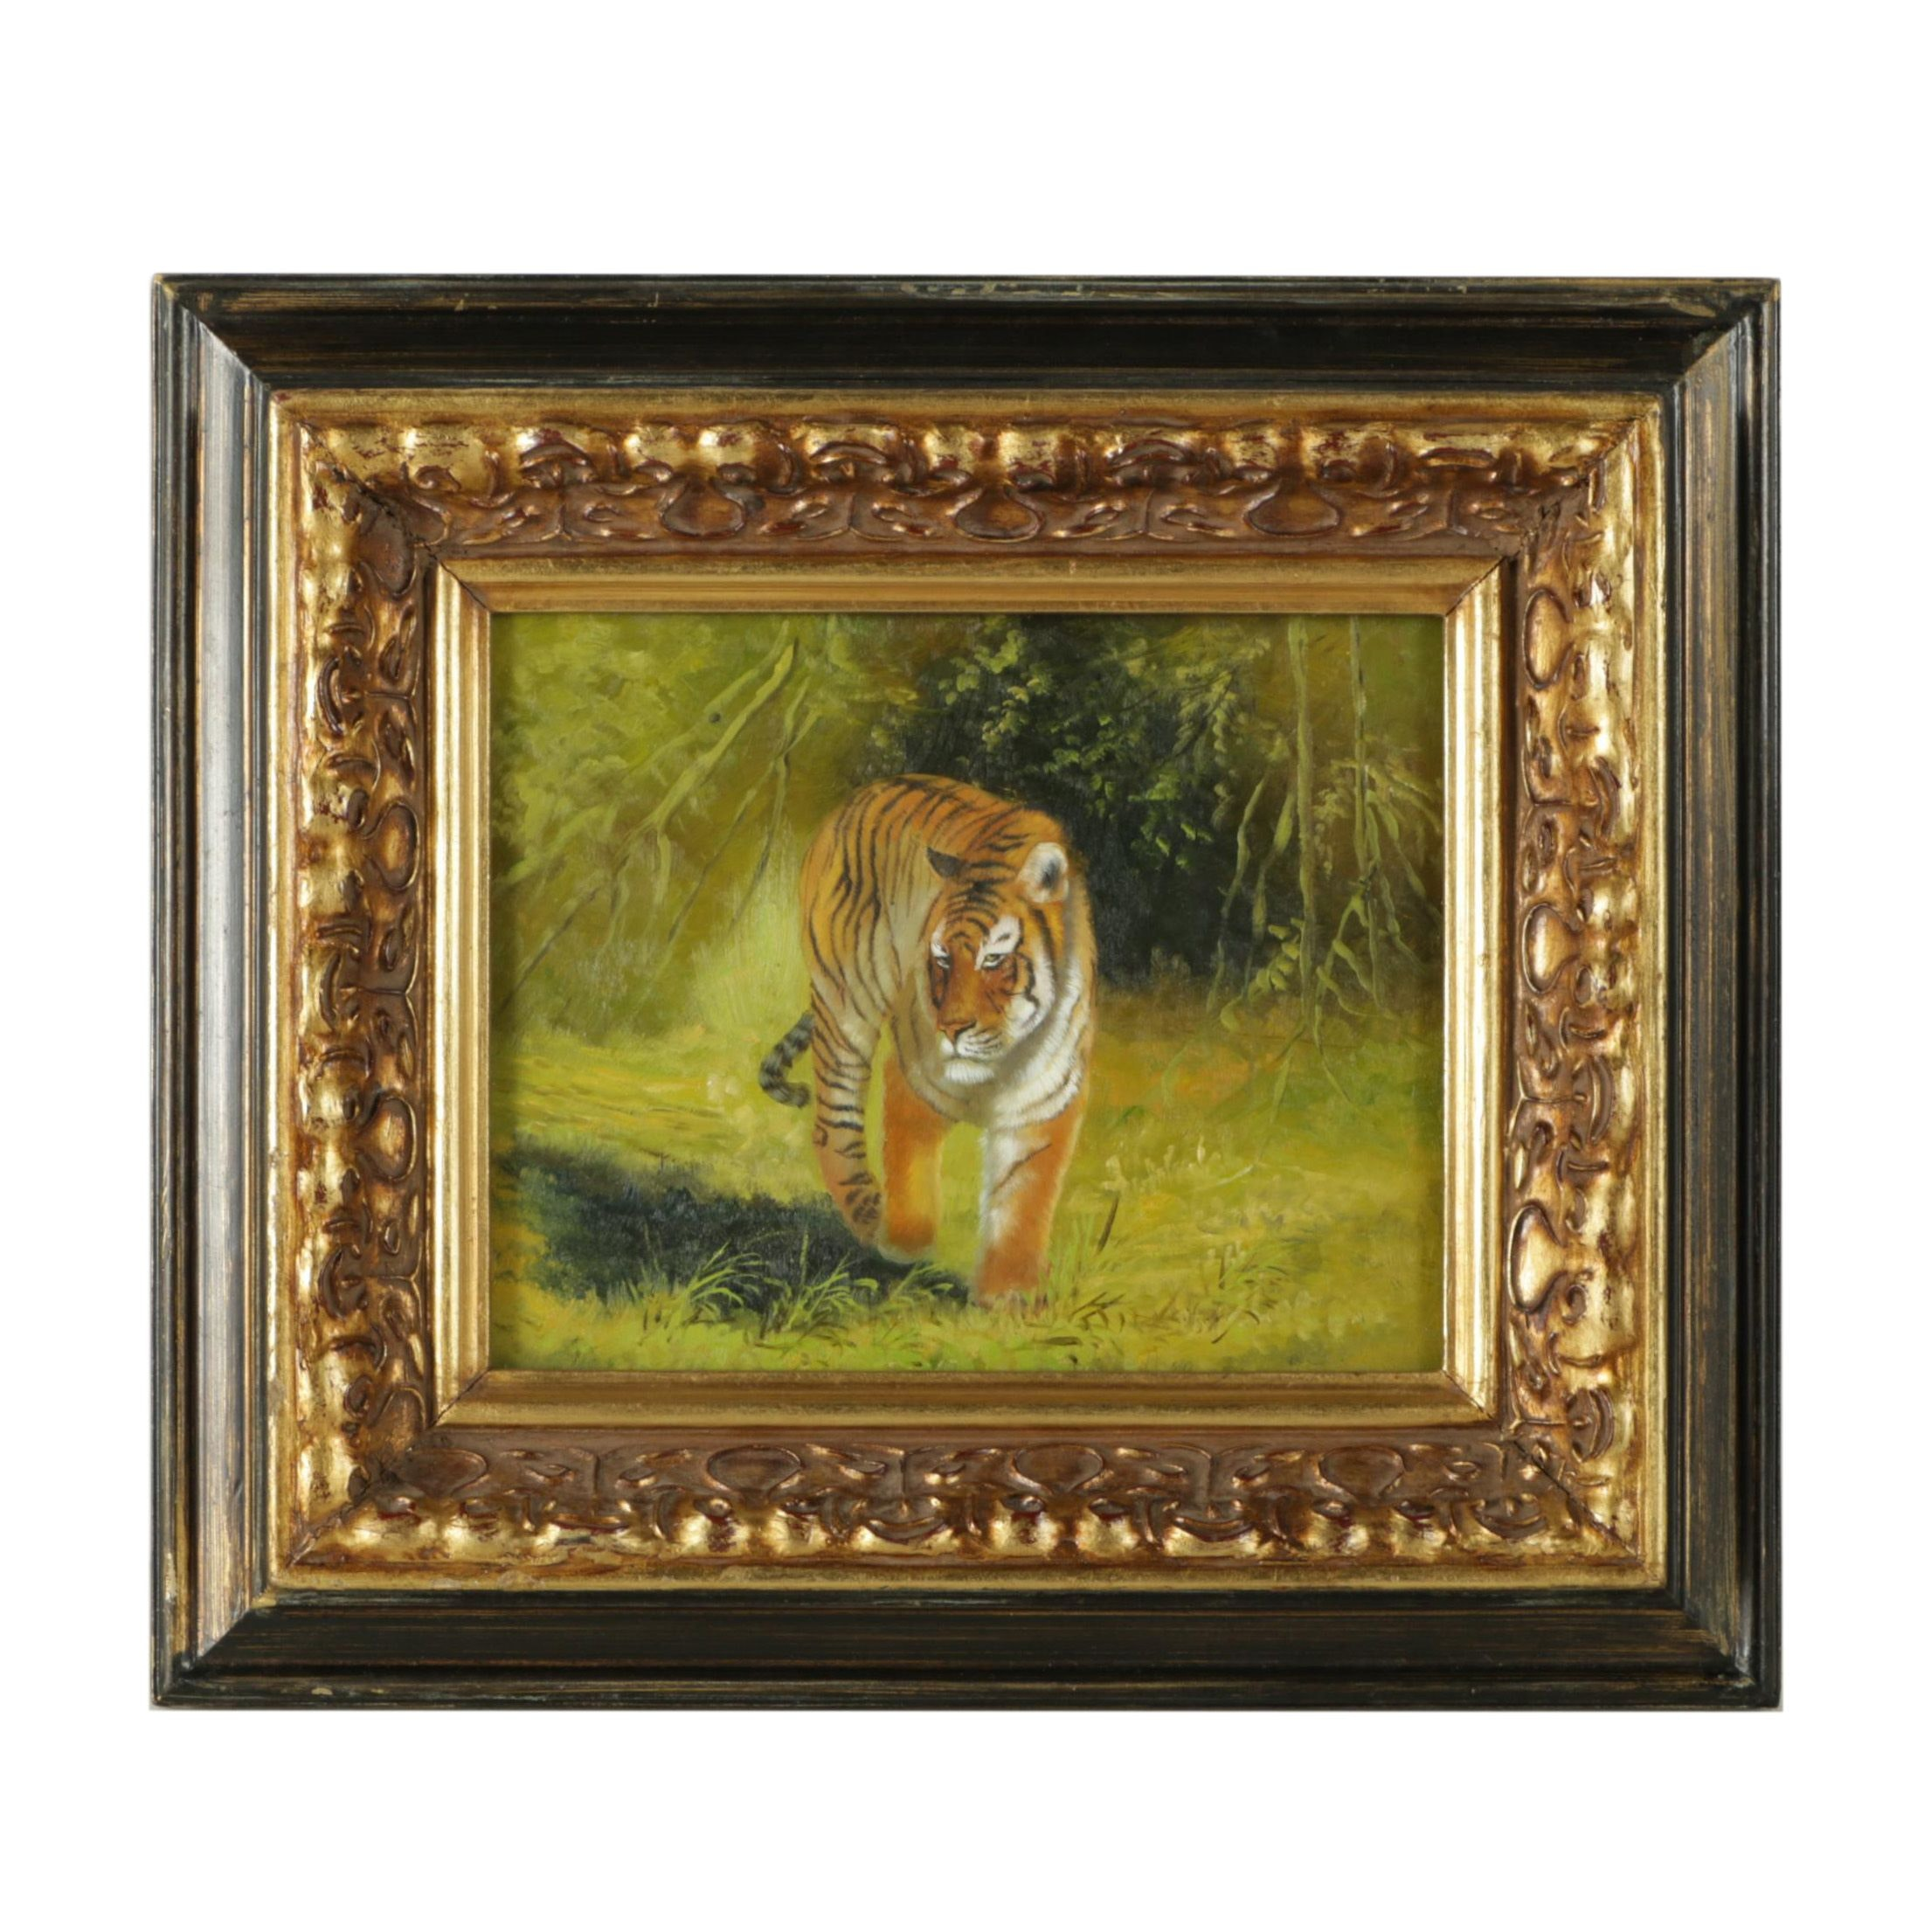 Oil Painting on Board of a Bengal Tiger